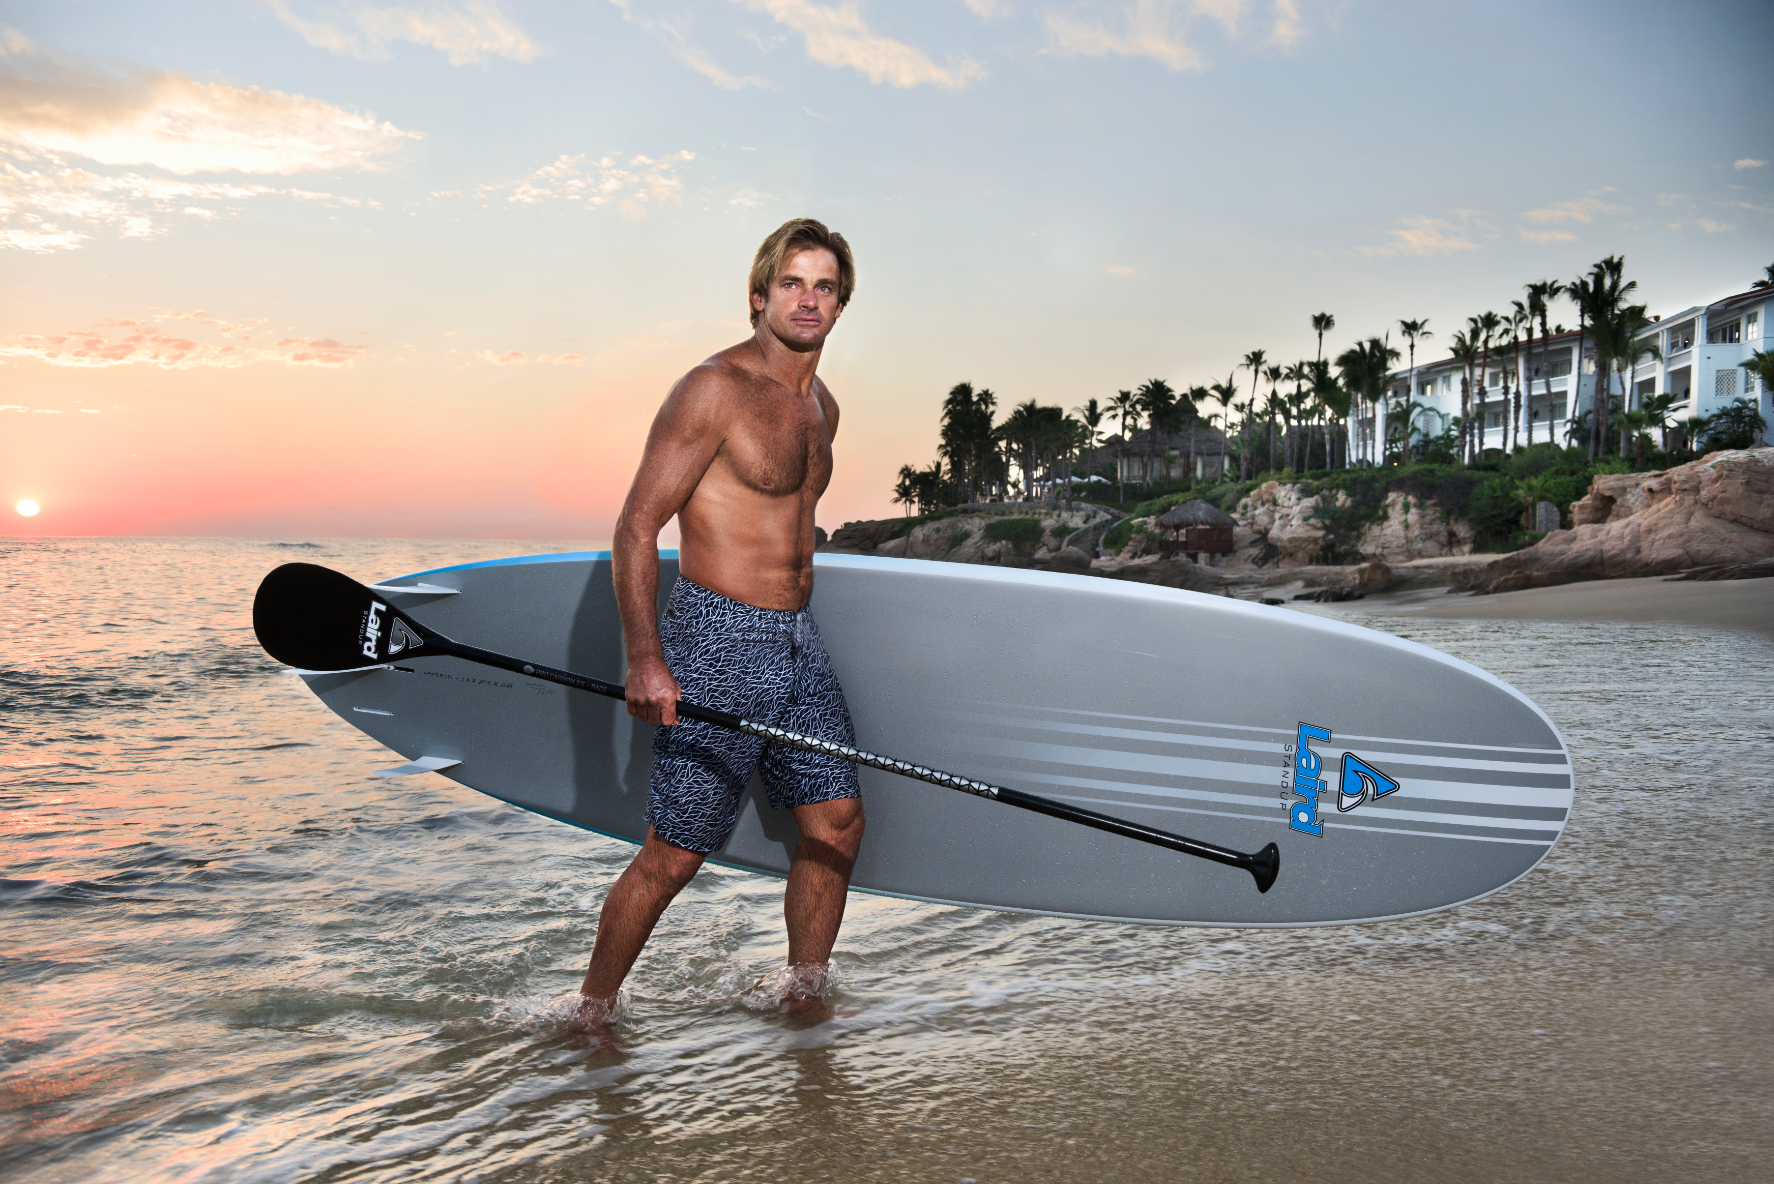 How To Nail The Laird Hamilton Look Daily Front Row